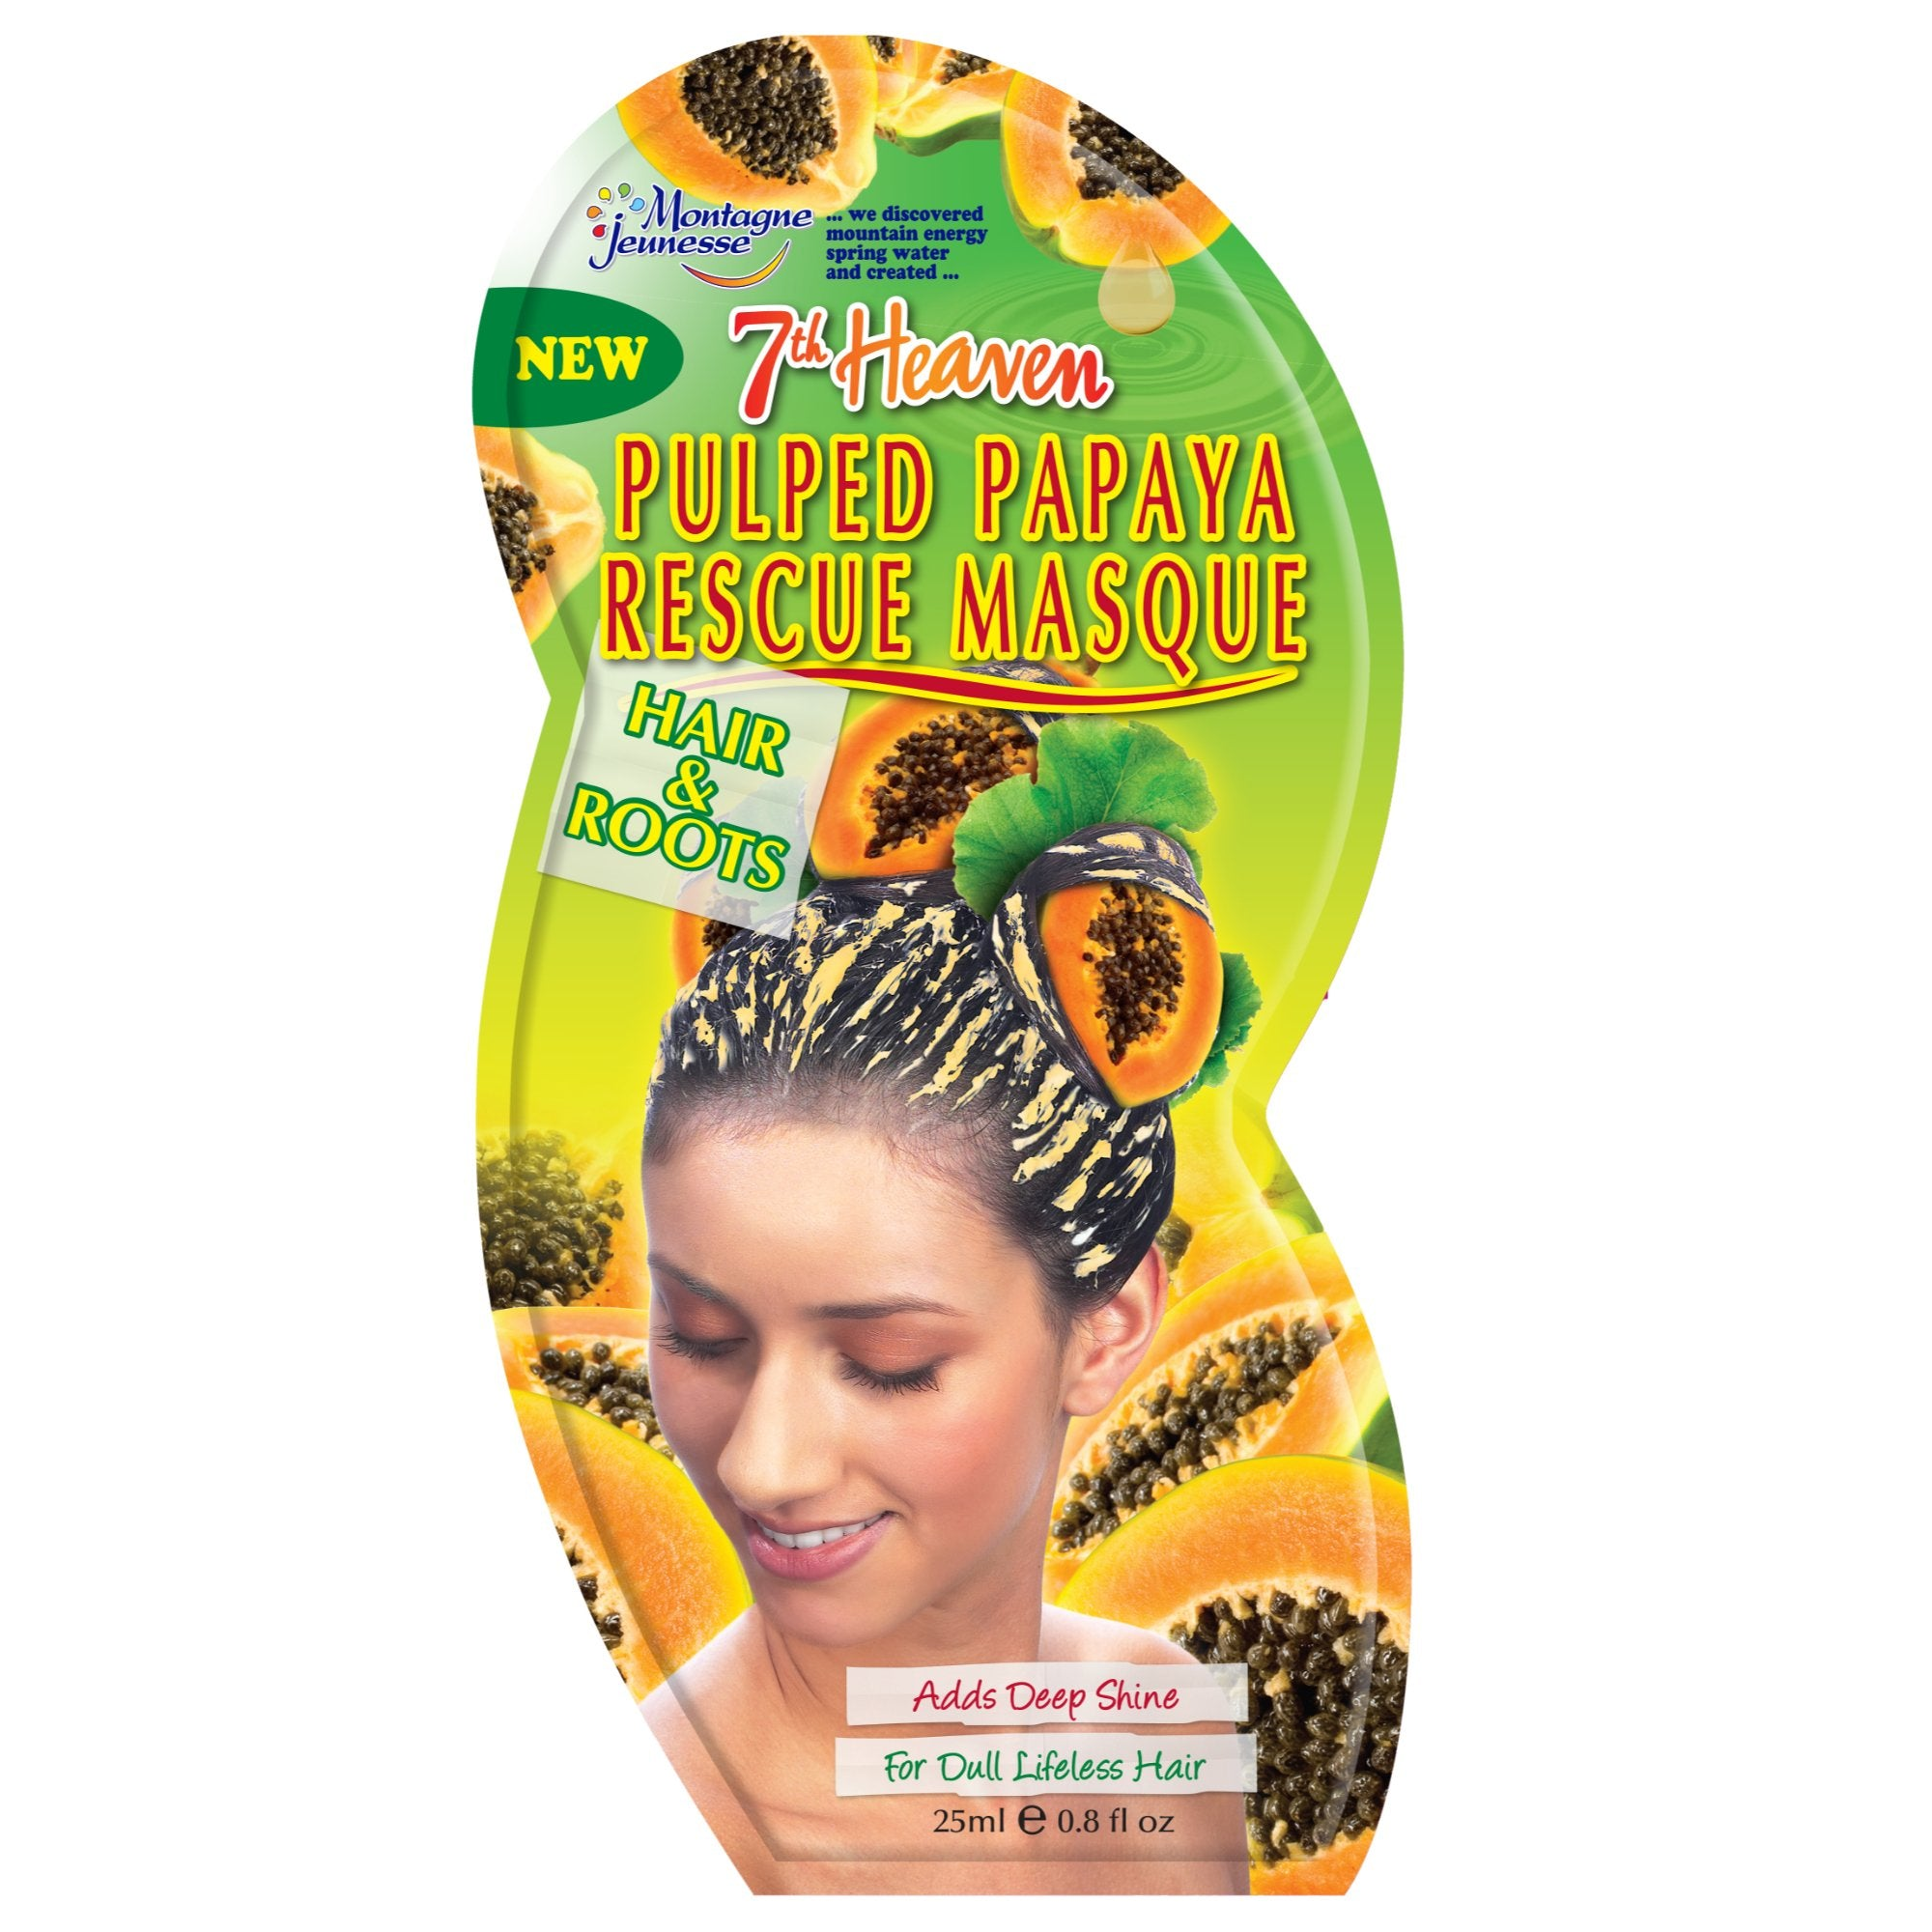 Pulped Papaya Hair Rescue Mask